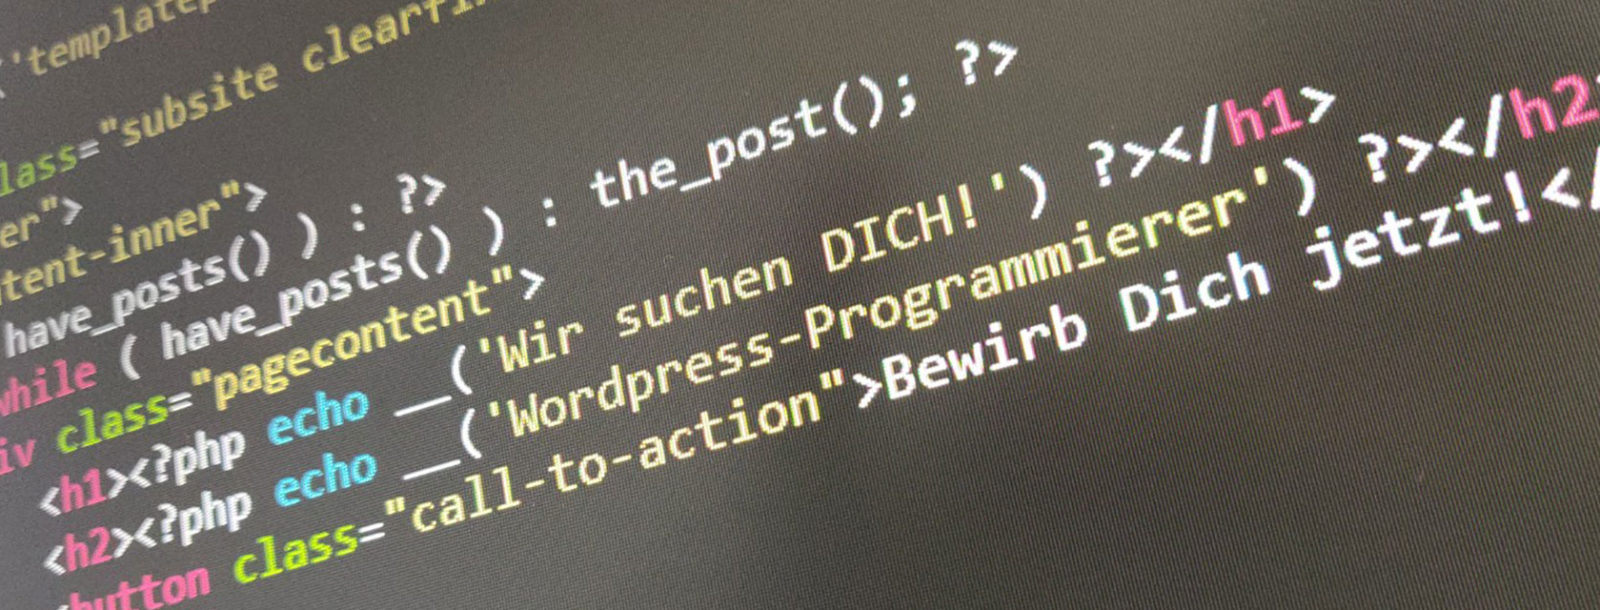 wordpress-programmierer